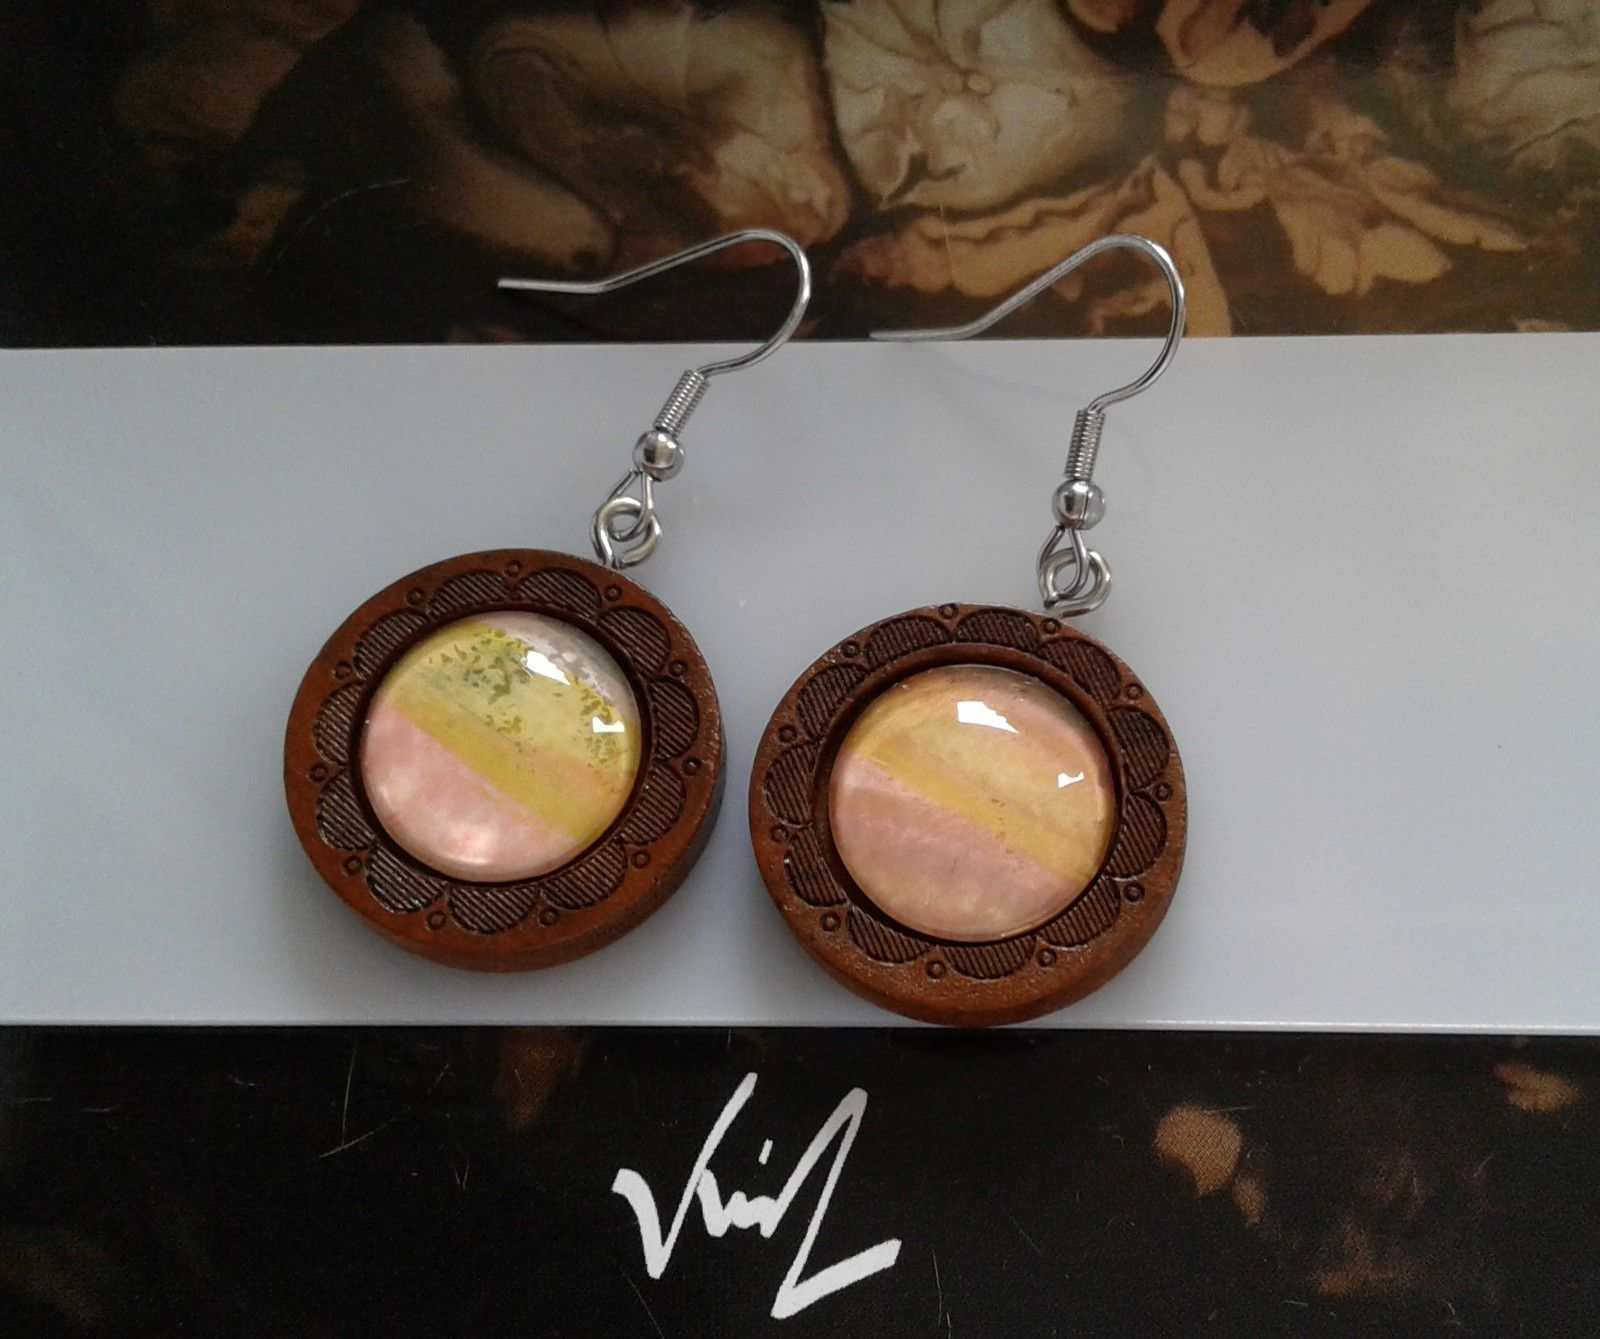 Fait mains en france, par artiste peintre,aquarelle originale isabelle k,rose jaune orange,vert blanc marron,boucles oreilles bois,crochets acier inoxydable,fleuri,cabochons ronds 15mm,bijou femme fille,boho bobo fantastique,gothique art deco art nouveau,baroque victorien rococo,cadeau fete anniversaire